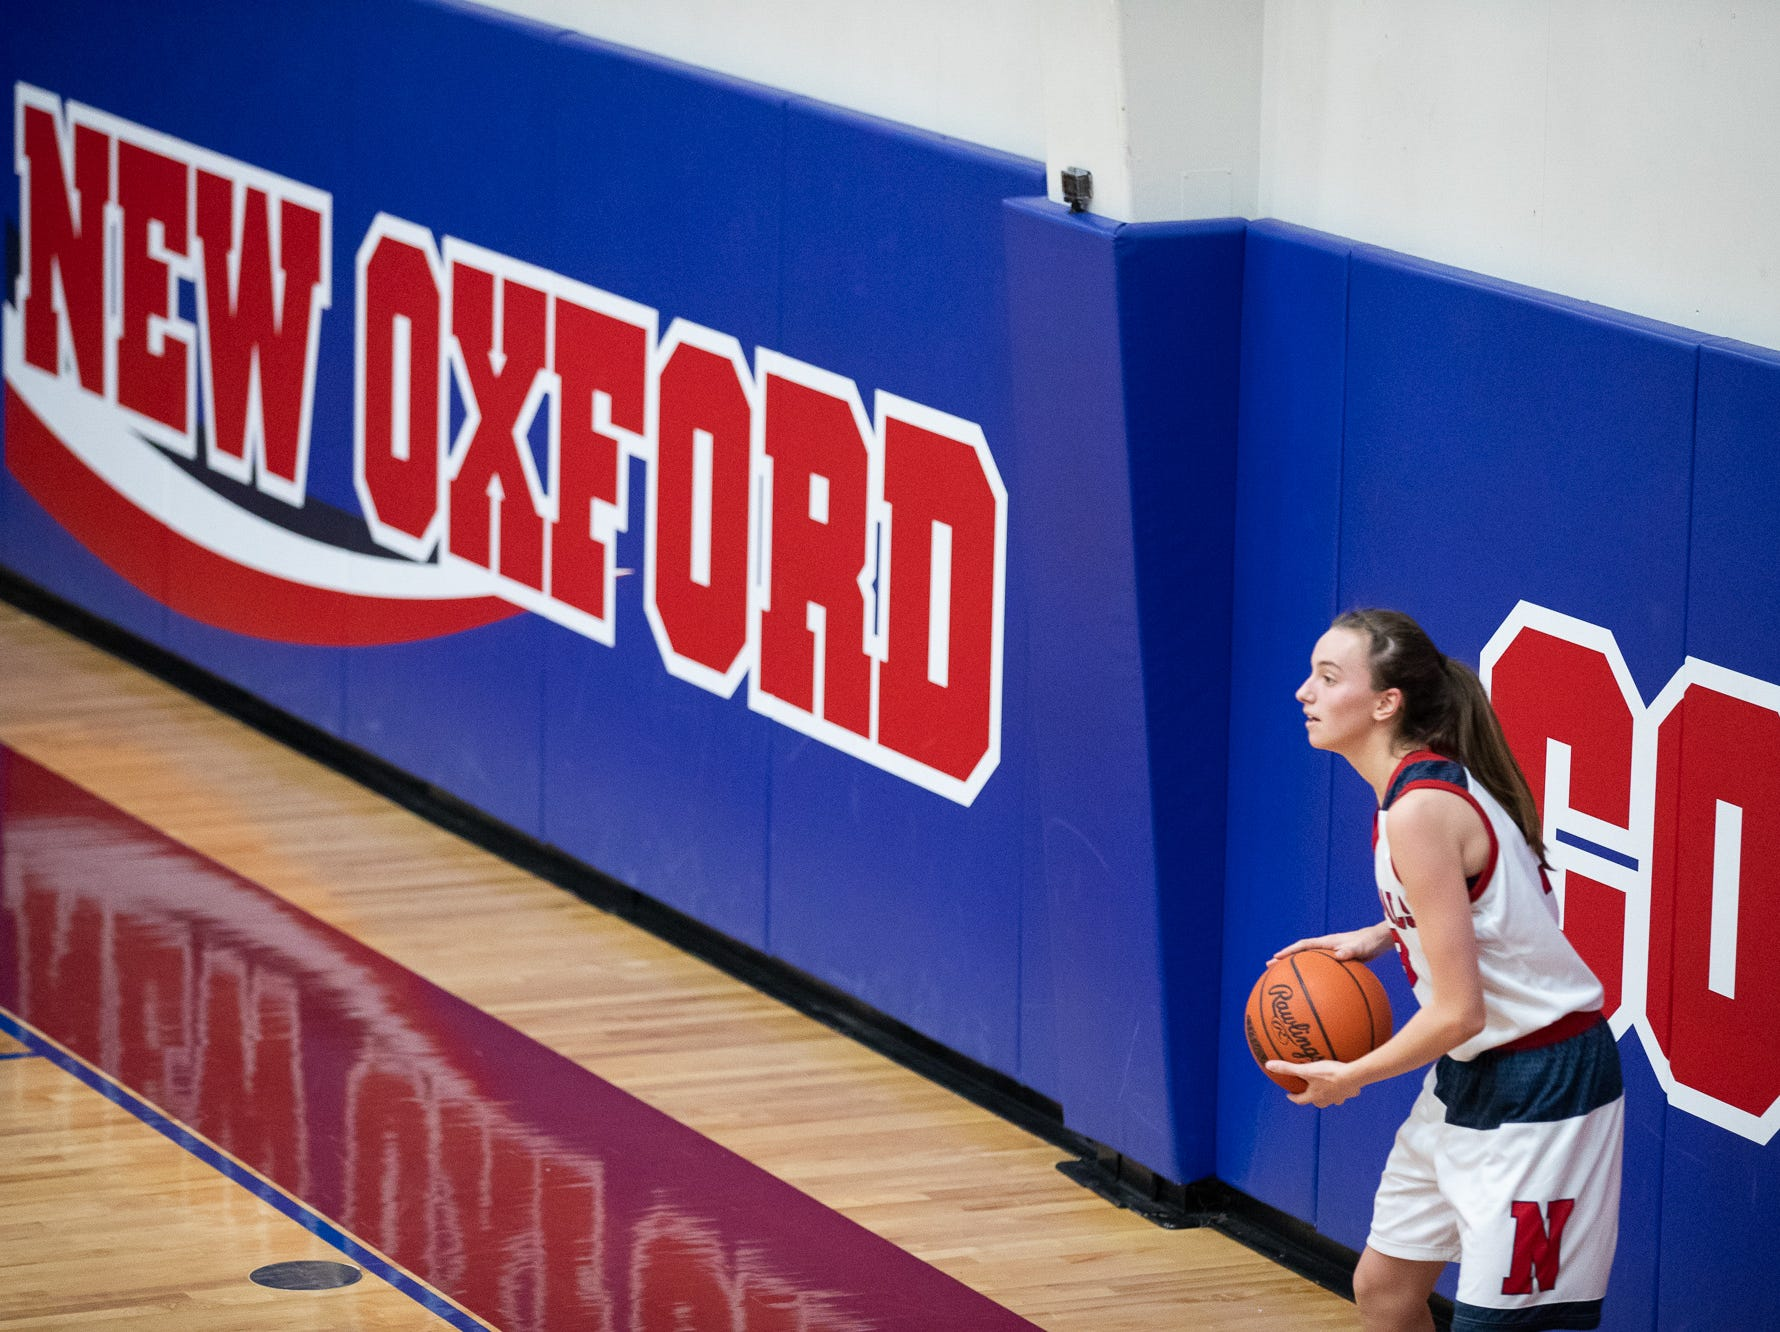 New Oxford's Daelyn Stabler (3) prepares to throw-in the ball during the championship game between New Oxford and Gettysburg at the New Oxford Girls Basketball Tip-Off Tournament, Saturday, Dec. 8, 2018, in New Oxford. The Gettysburg Lady Warriors defeated the New Oxford Lady Colonials 47-40.